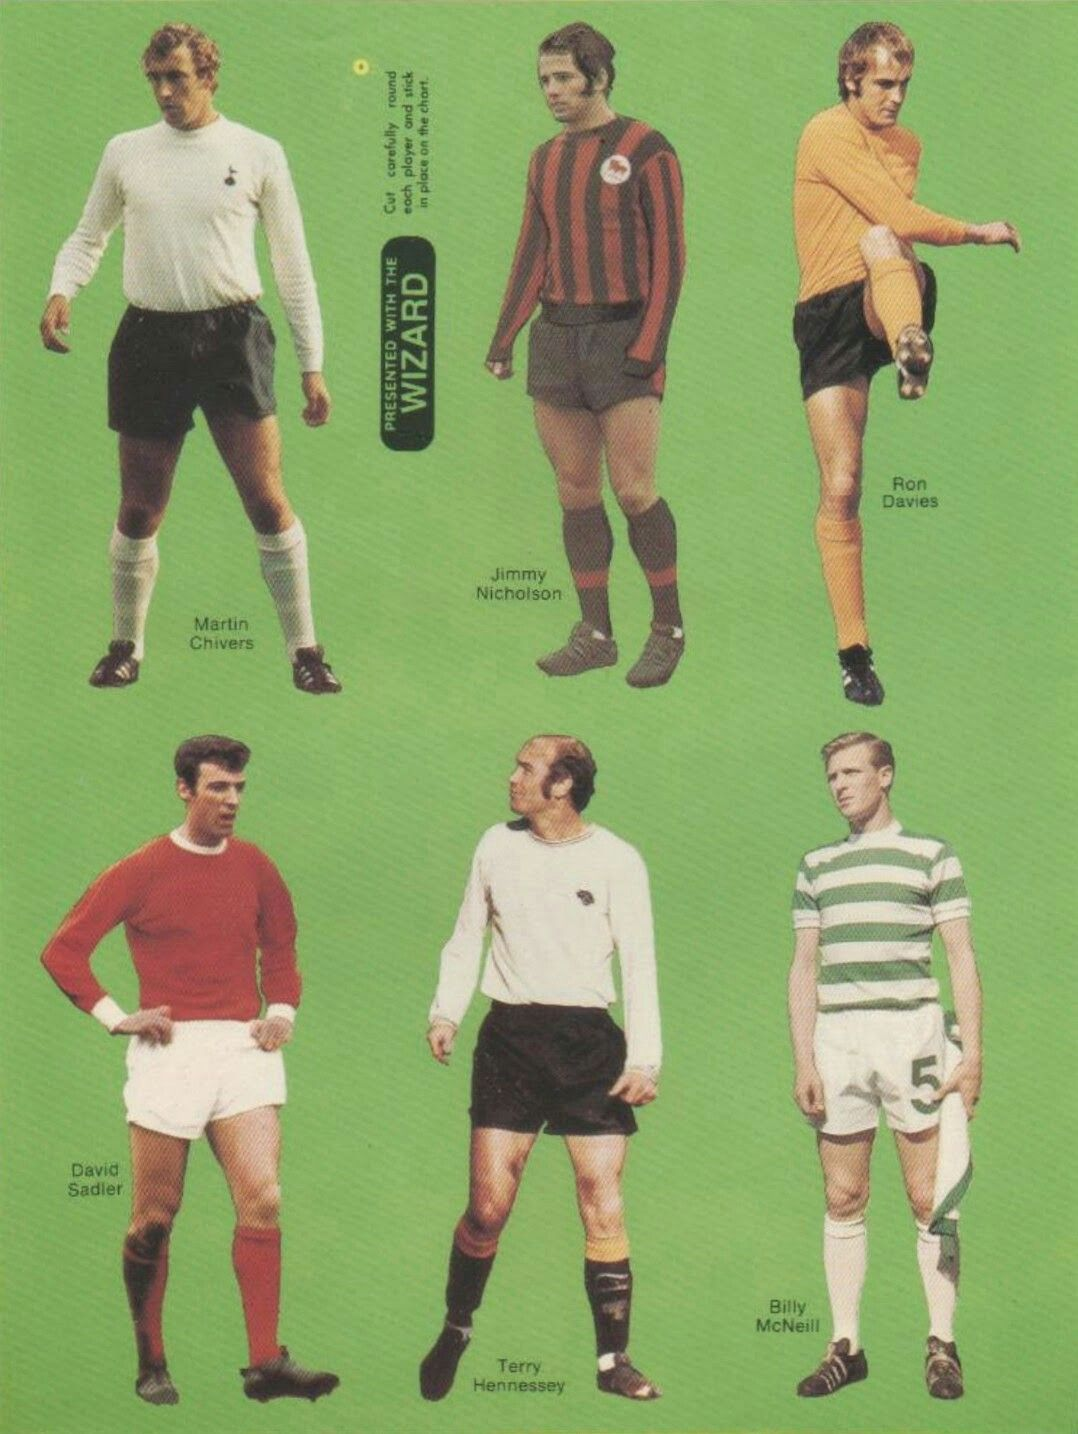 Football player cut outs with Wizard magazine in the early 1970s.